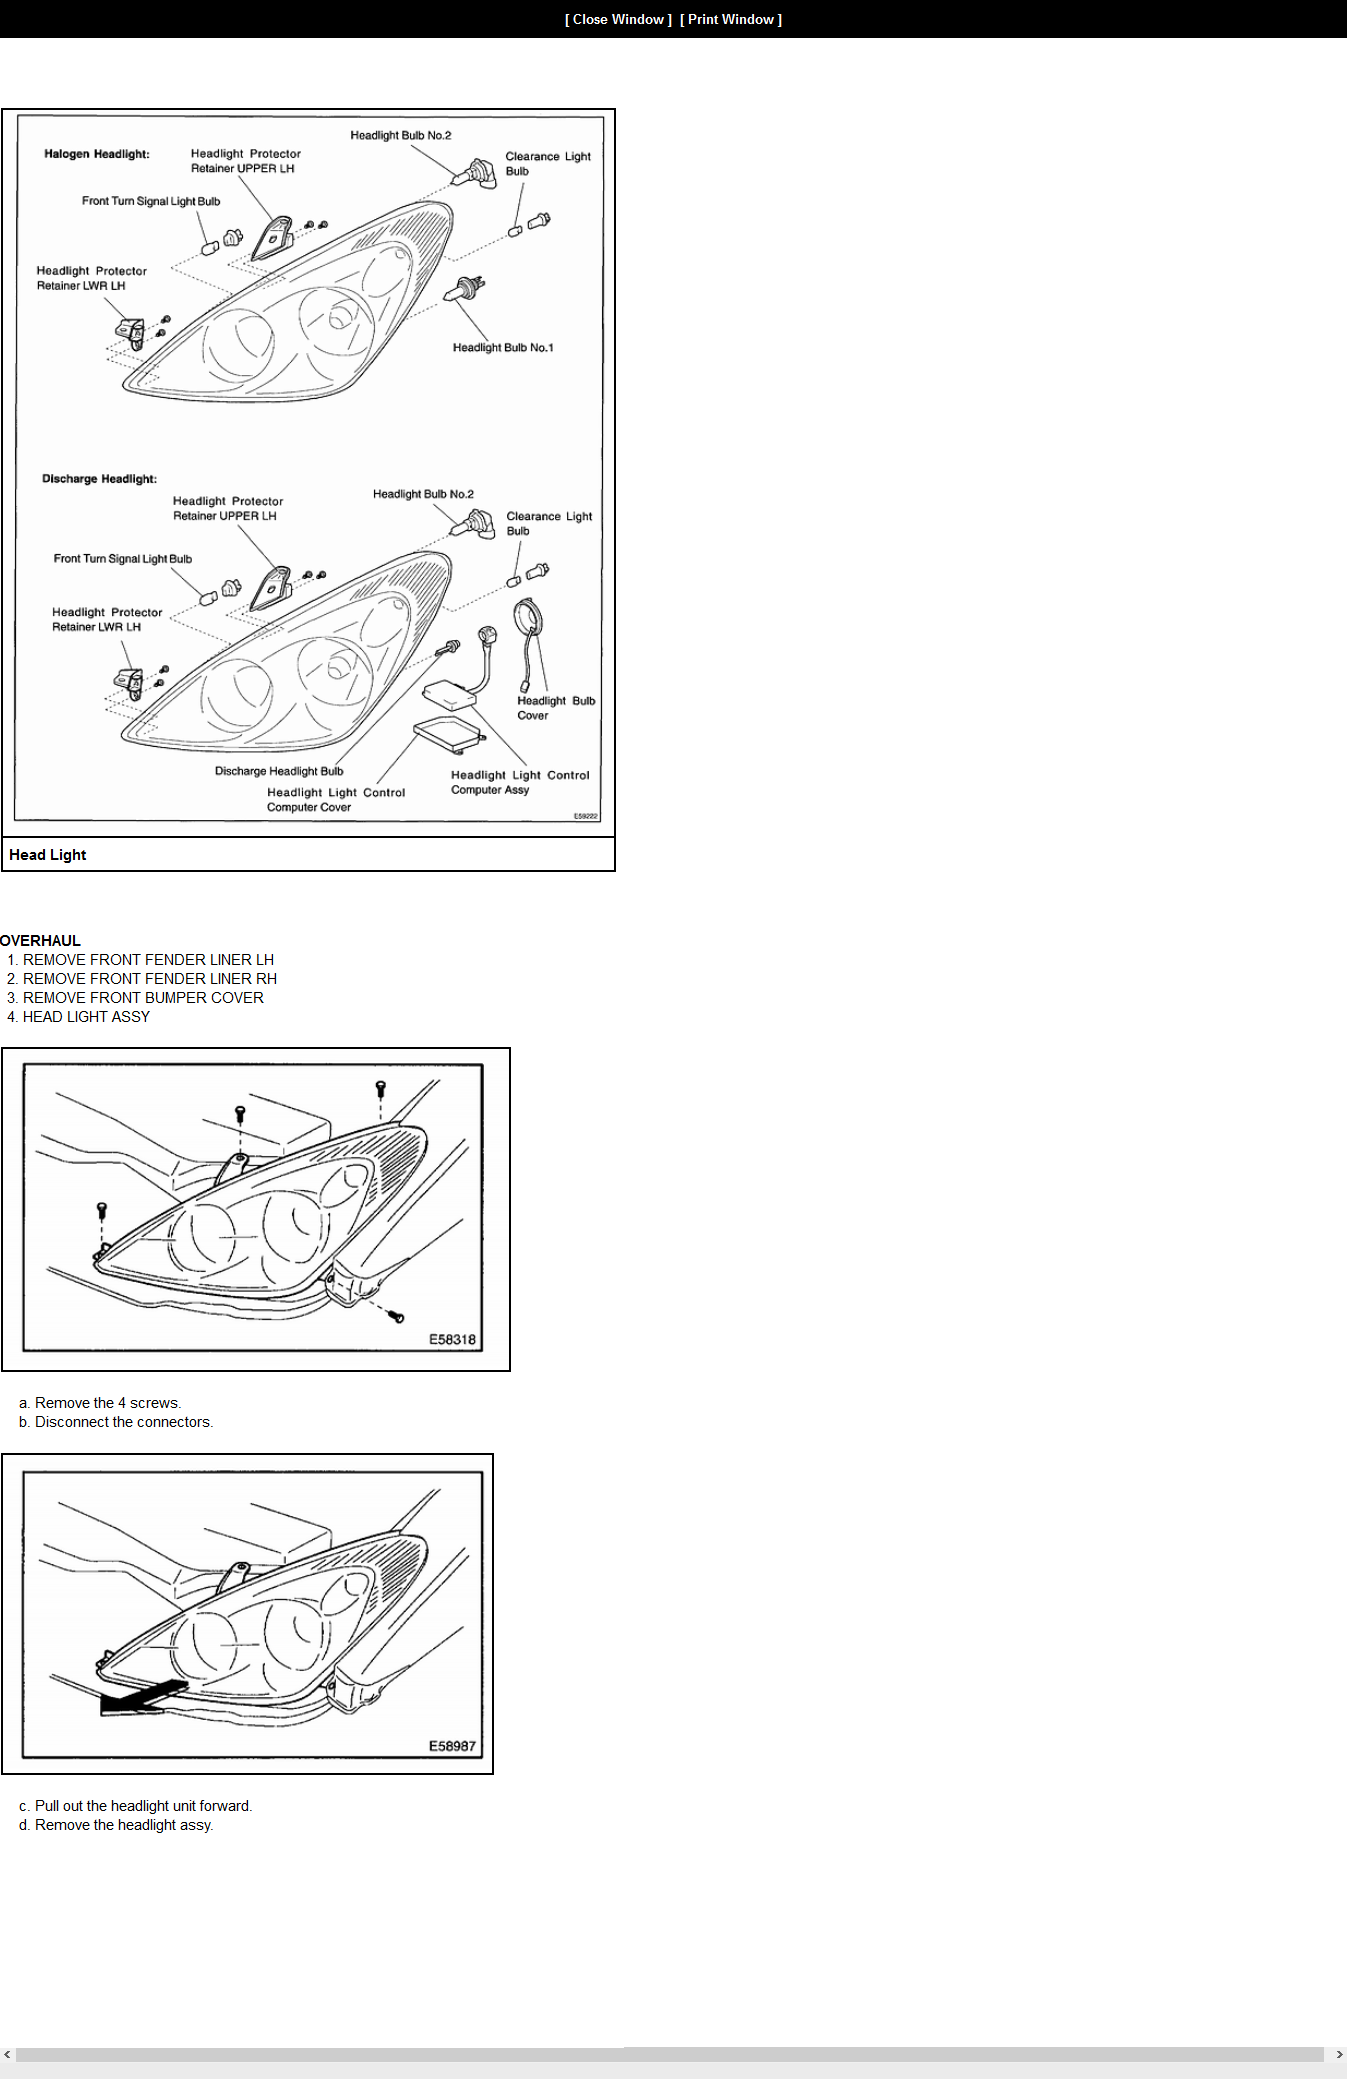 lexus headlight diagram data wiring diagram lexus headlight diagram wiring diagrams second 2007 lexus is250 headlight diagram i need to remove replace